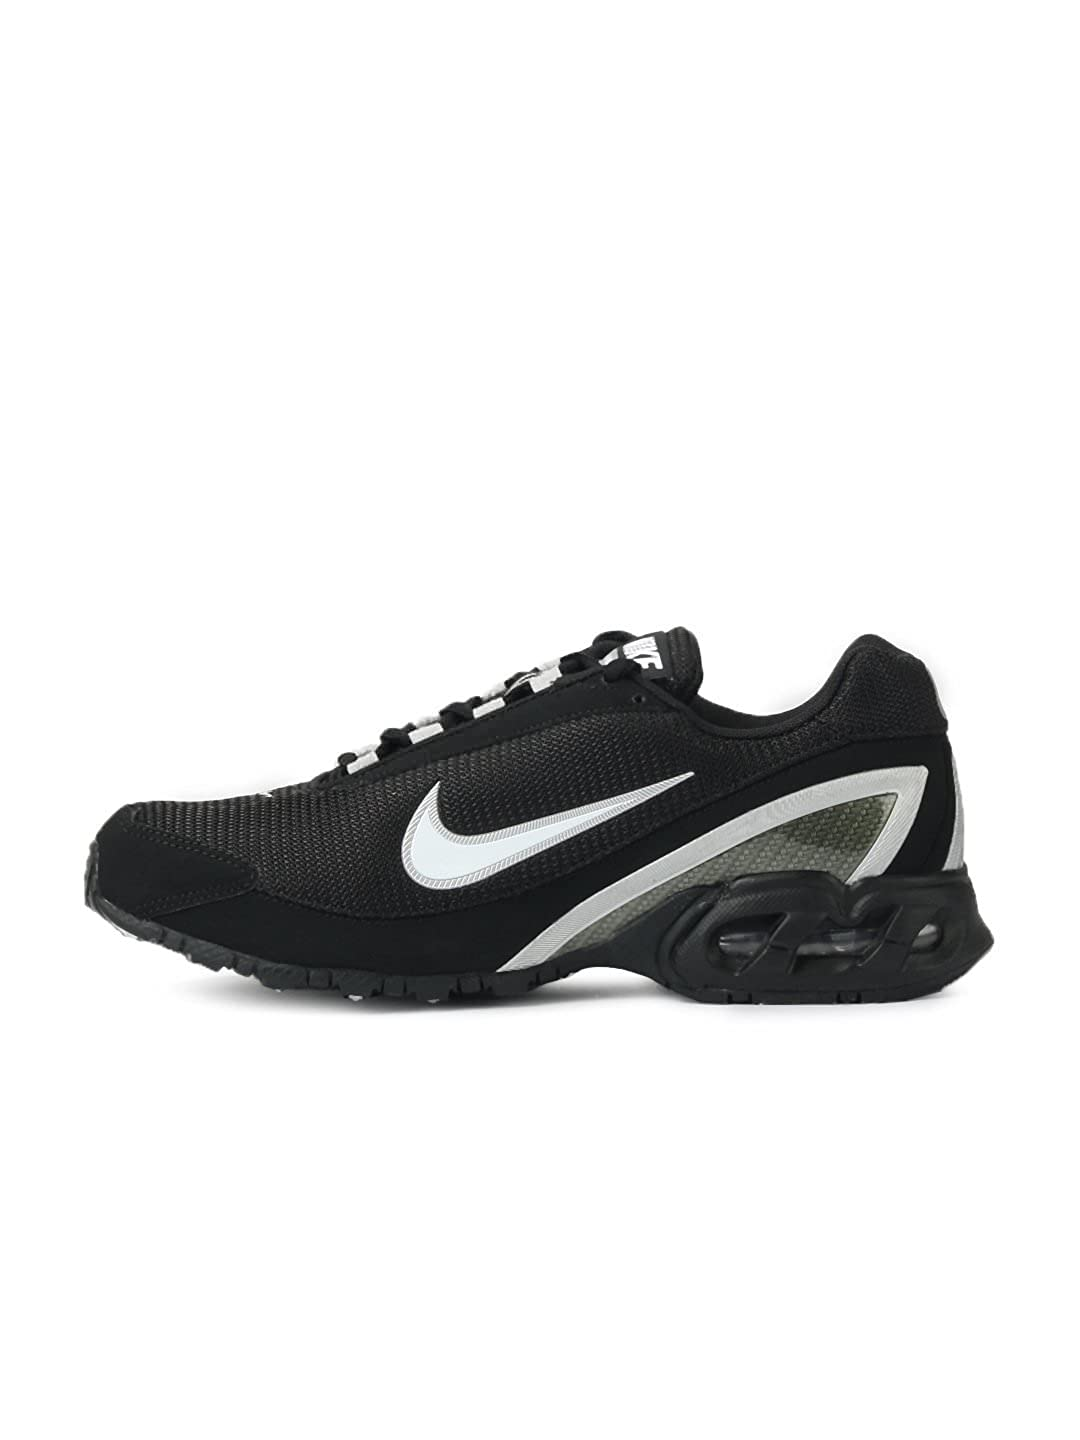 96b55b0f23 Amazon.com | Nike Air Max Torch 3 Men's Running Shoes | Road Running